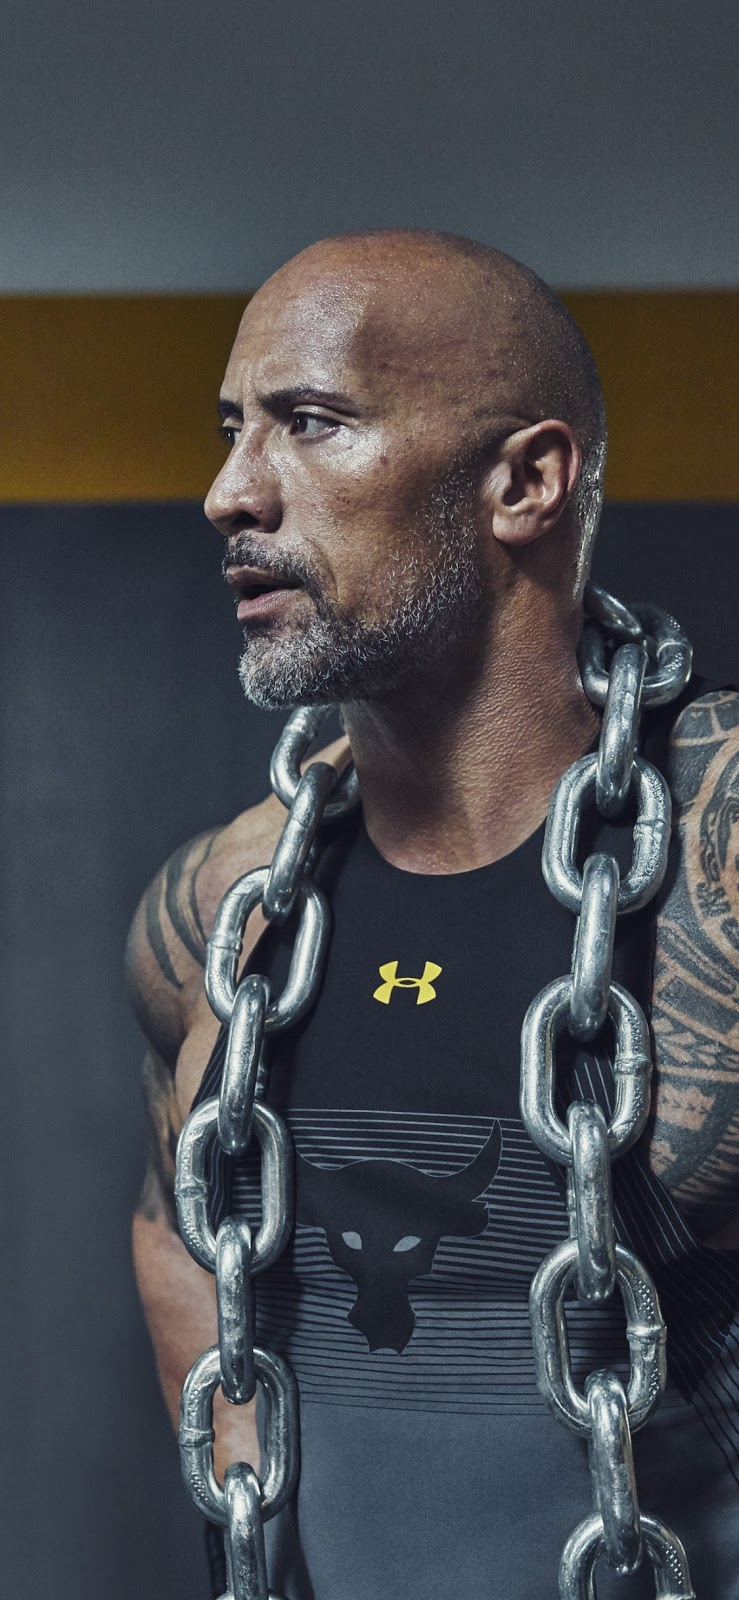 Dwayne Johnson 2019 Mobile Wallpaper